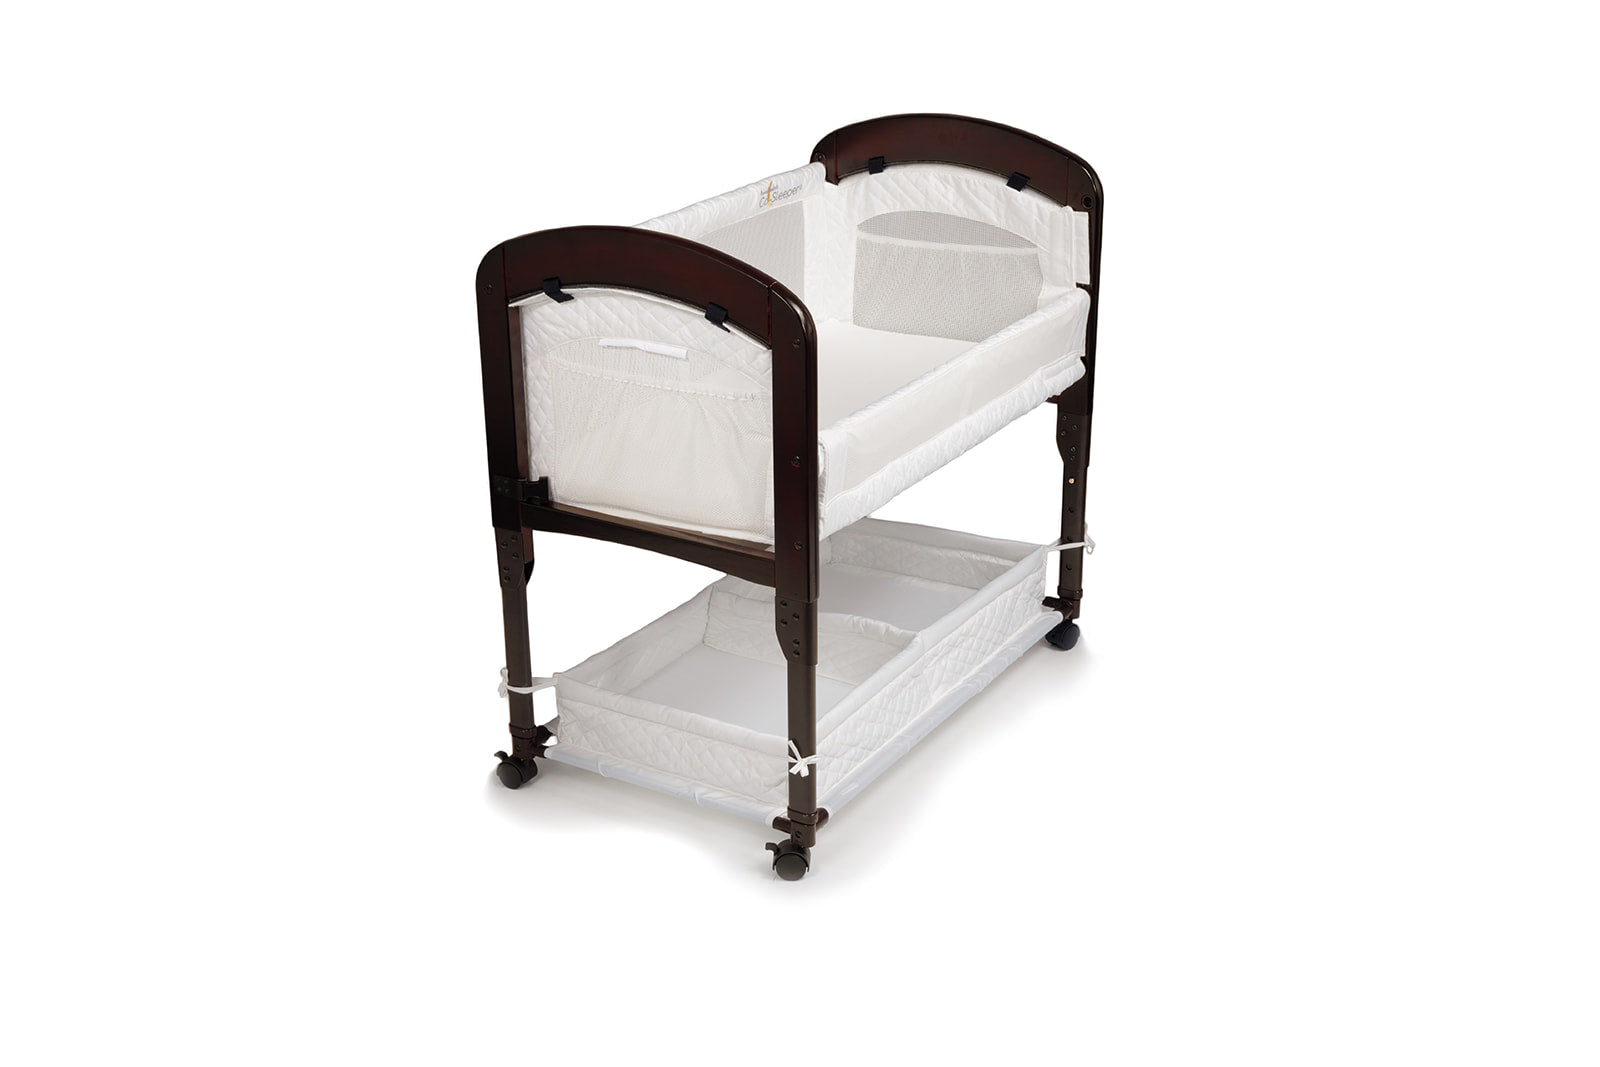 Arm's Reach Cambria Co-Sleeper Bassinet espresso white